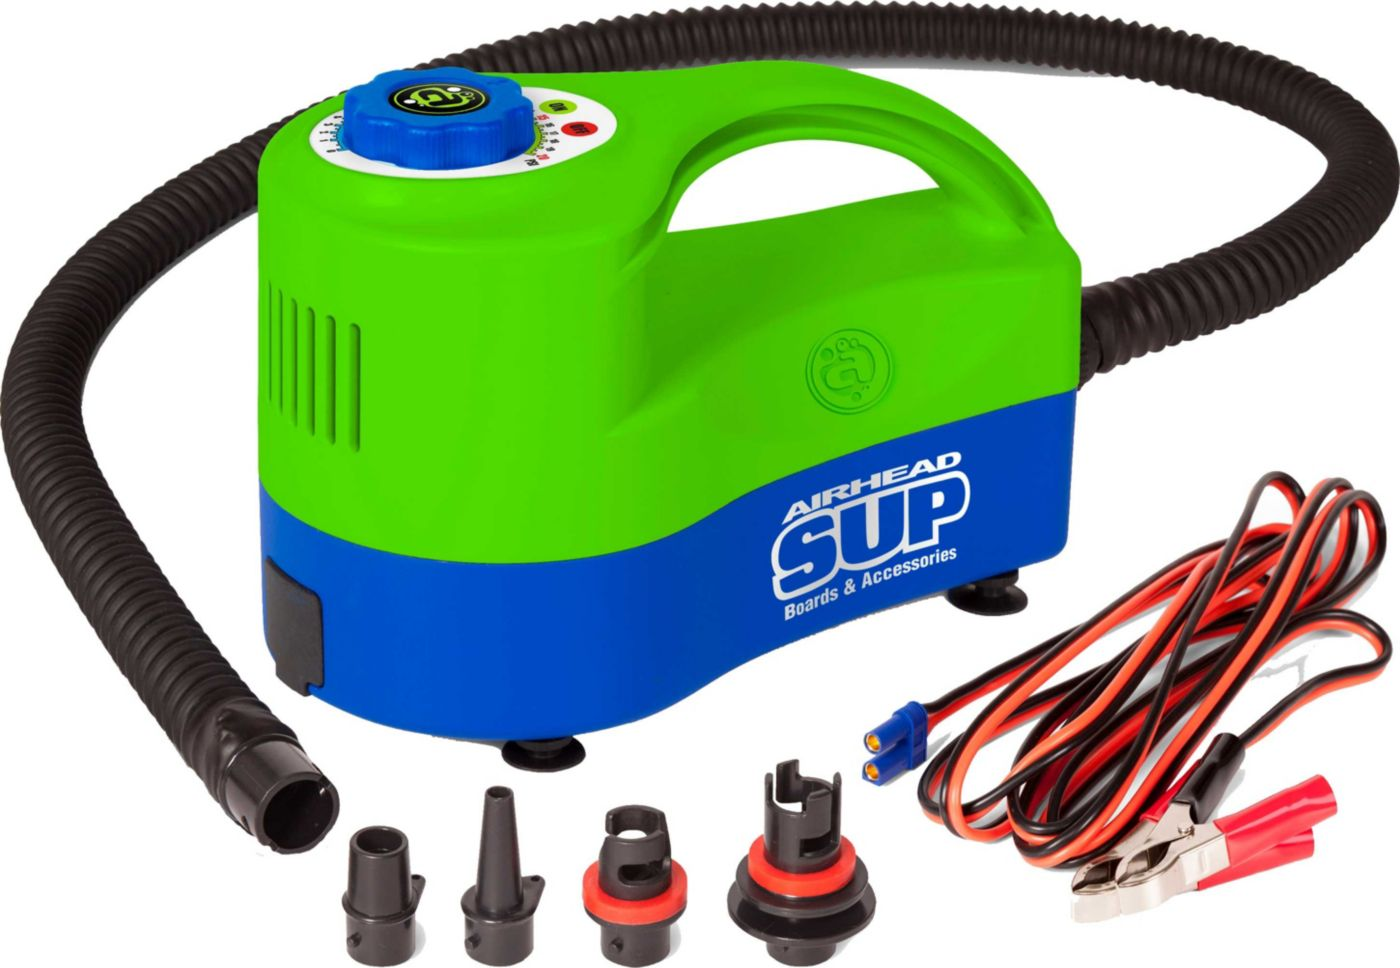 Airhead Velocity Stand-Up Paddle Board 12V Air Pump